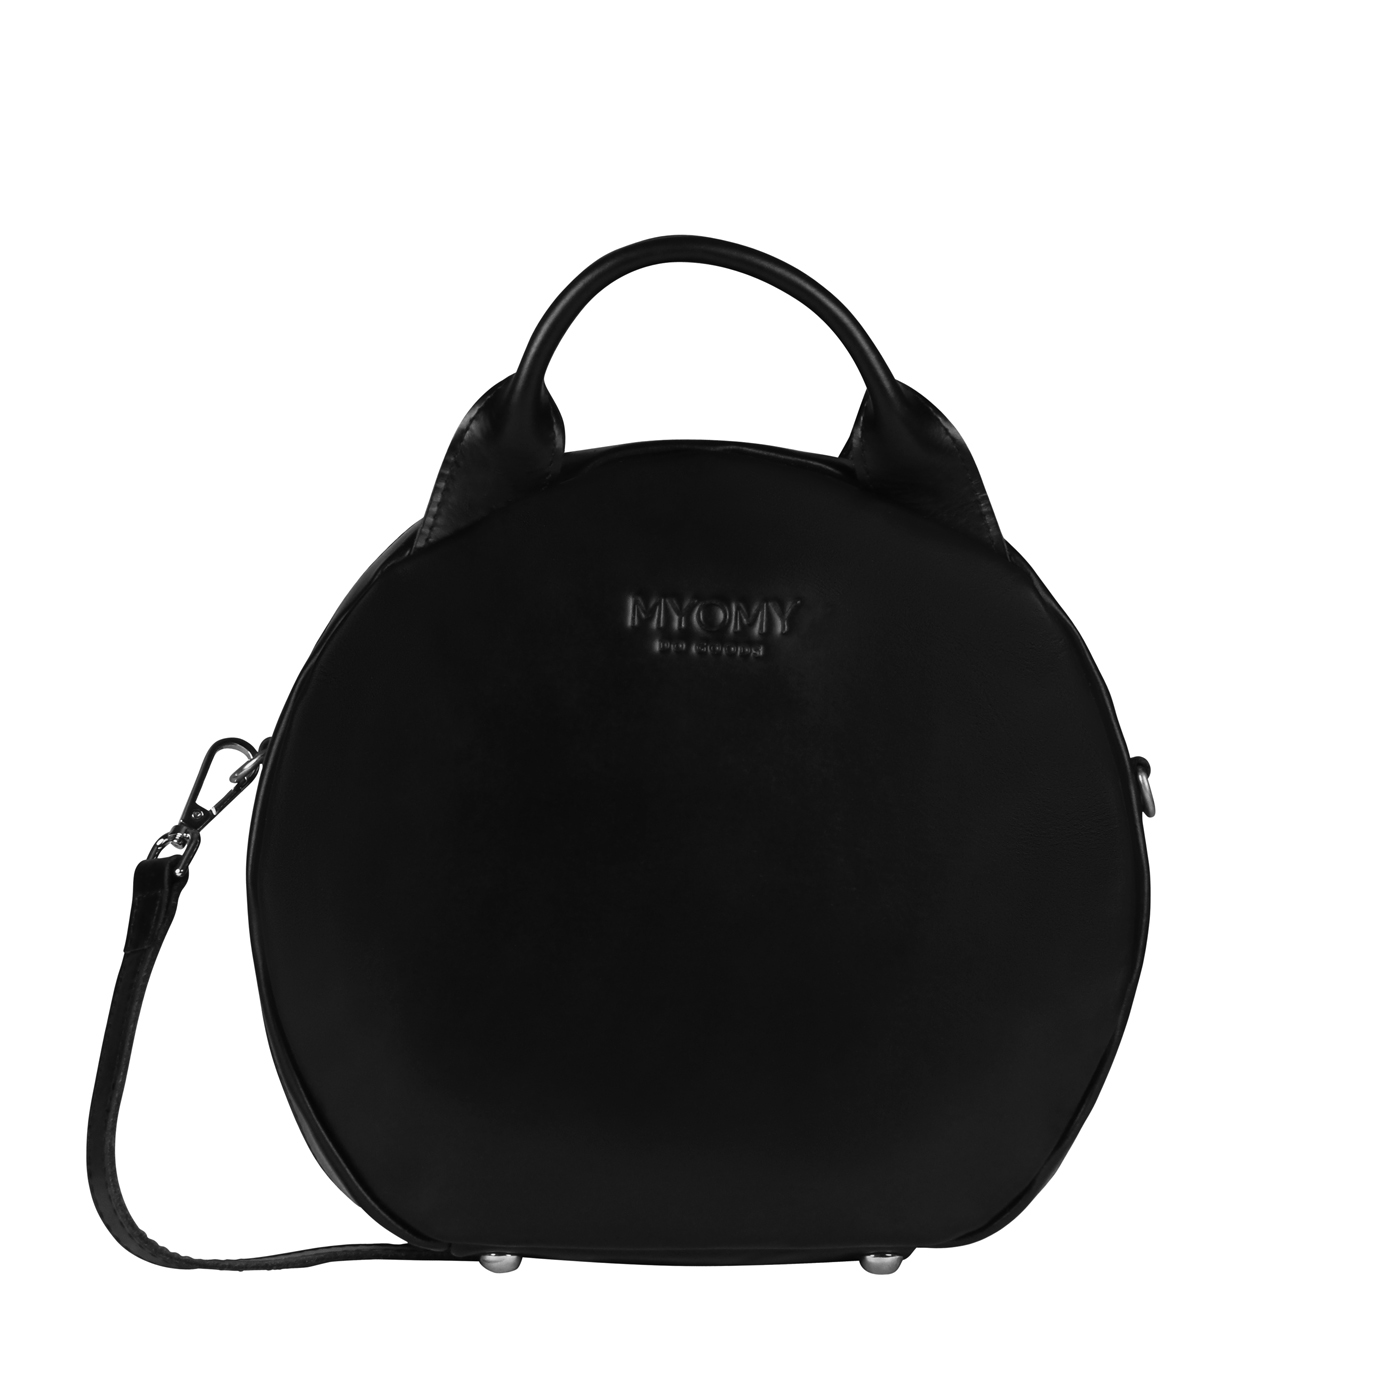 MY BOXY BAG Cookie - hunter waxy black